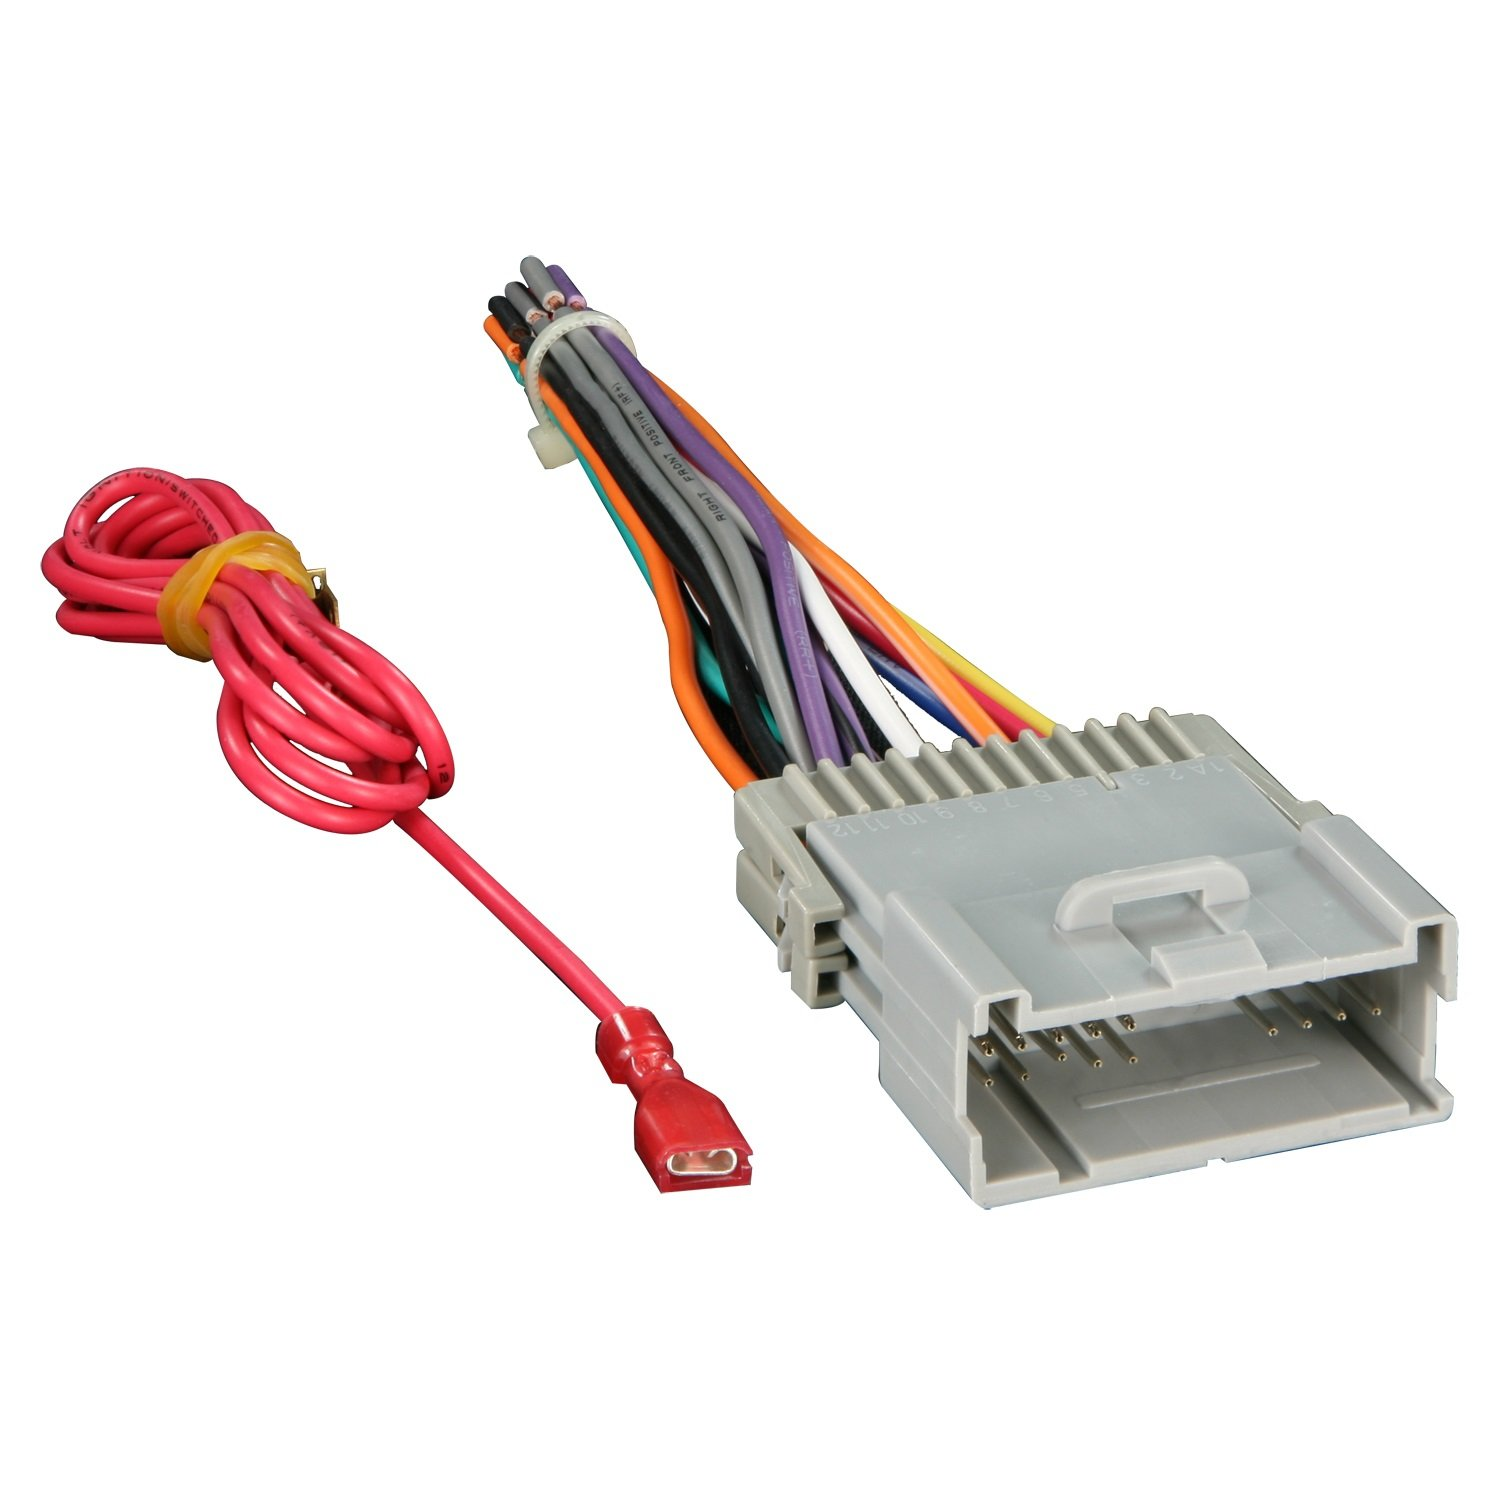 61eewxp9orL._SL1500_ amazon com metra 70 2003 radio wiring harness for gm 98 08  at edmiracle.co